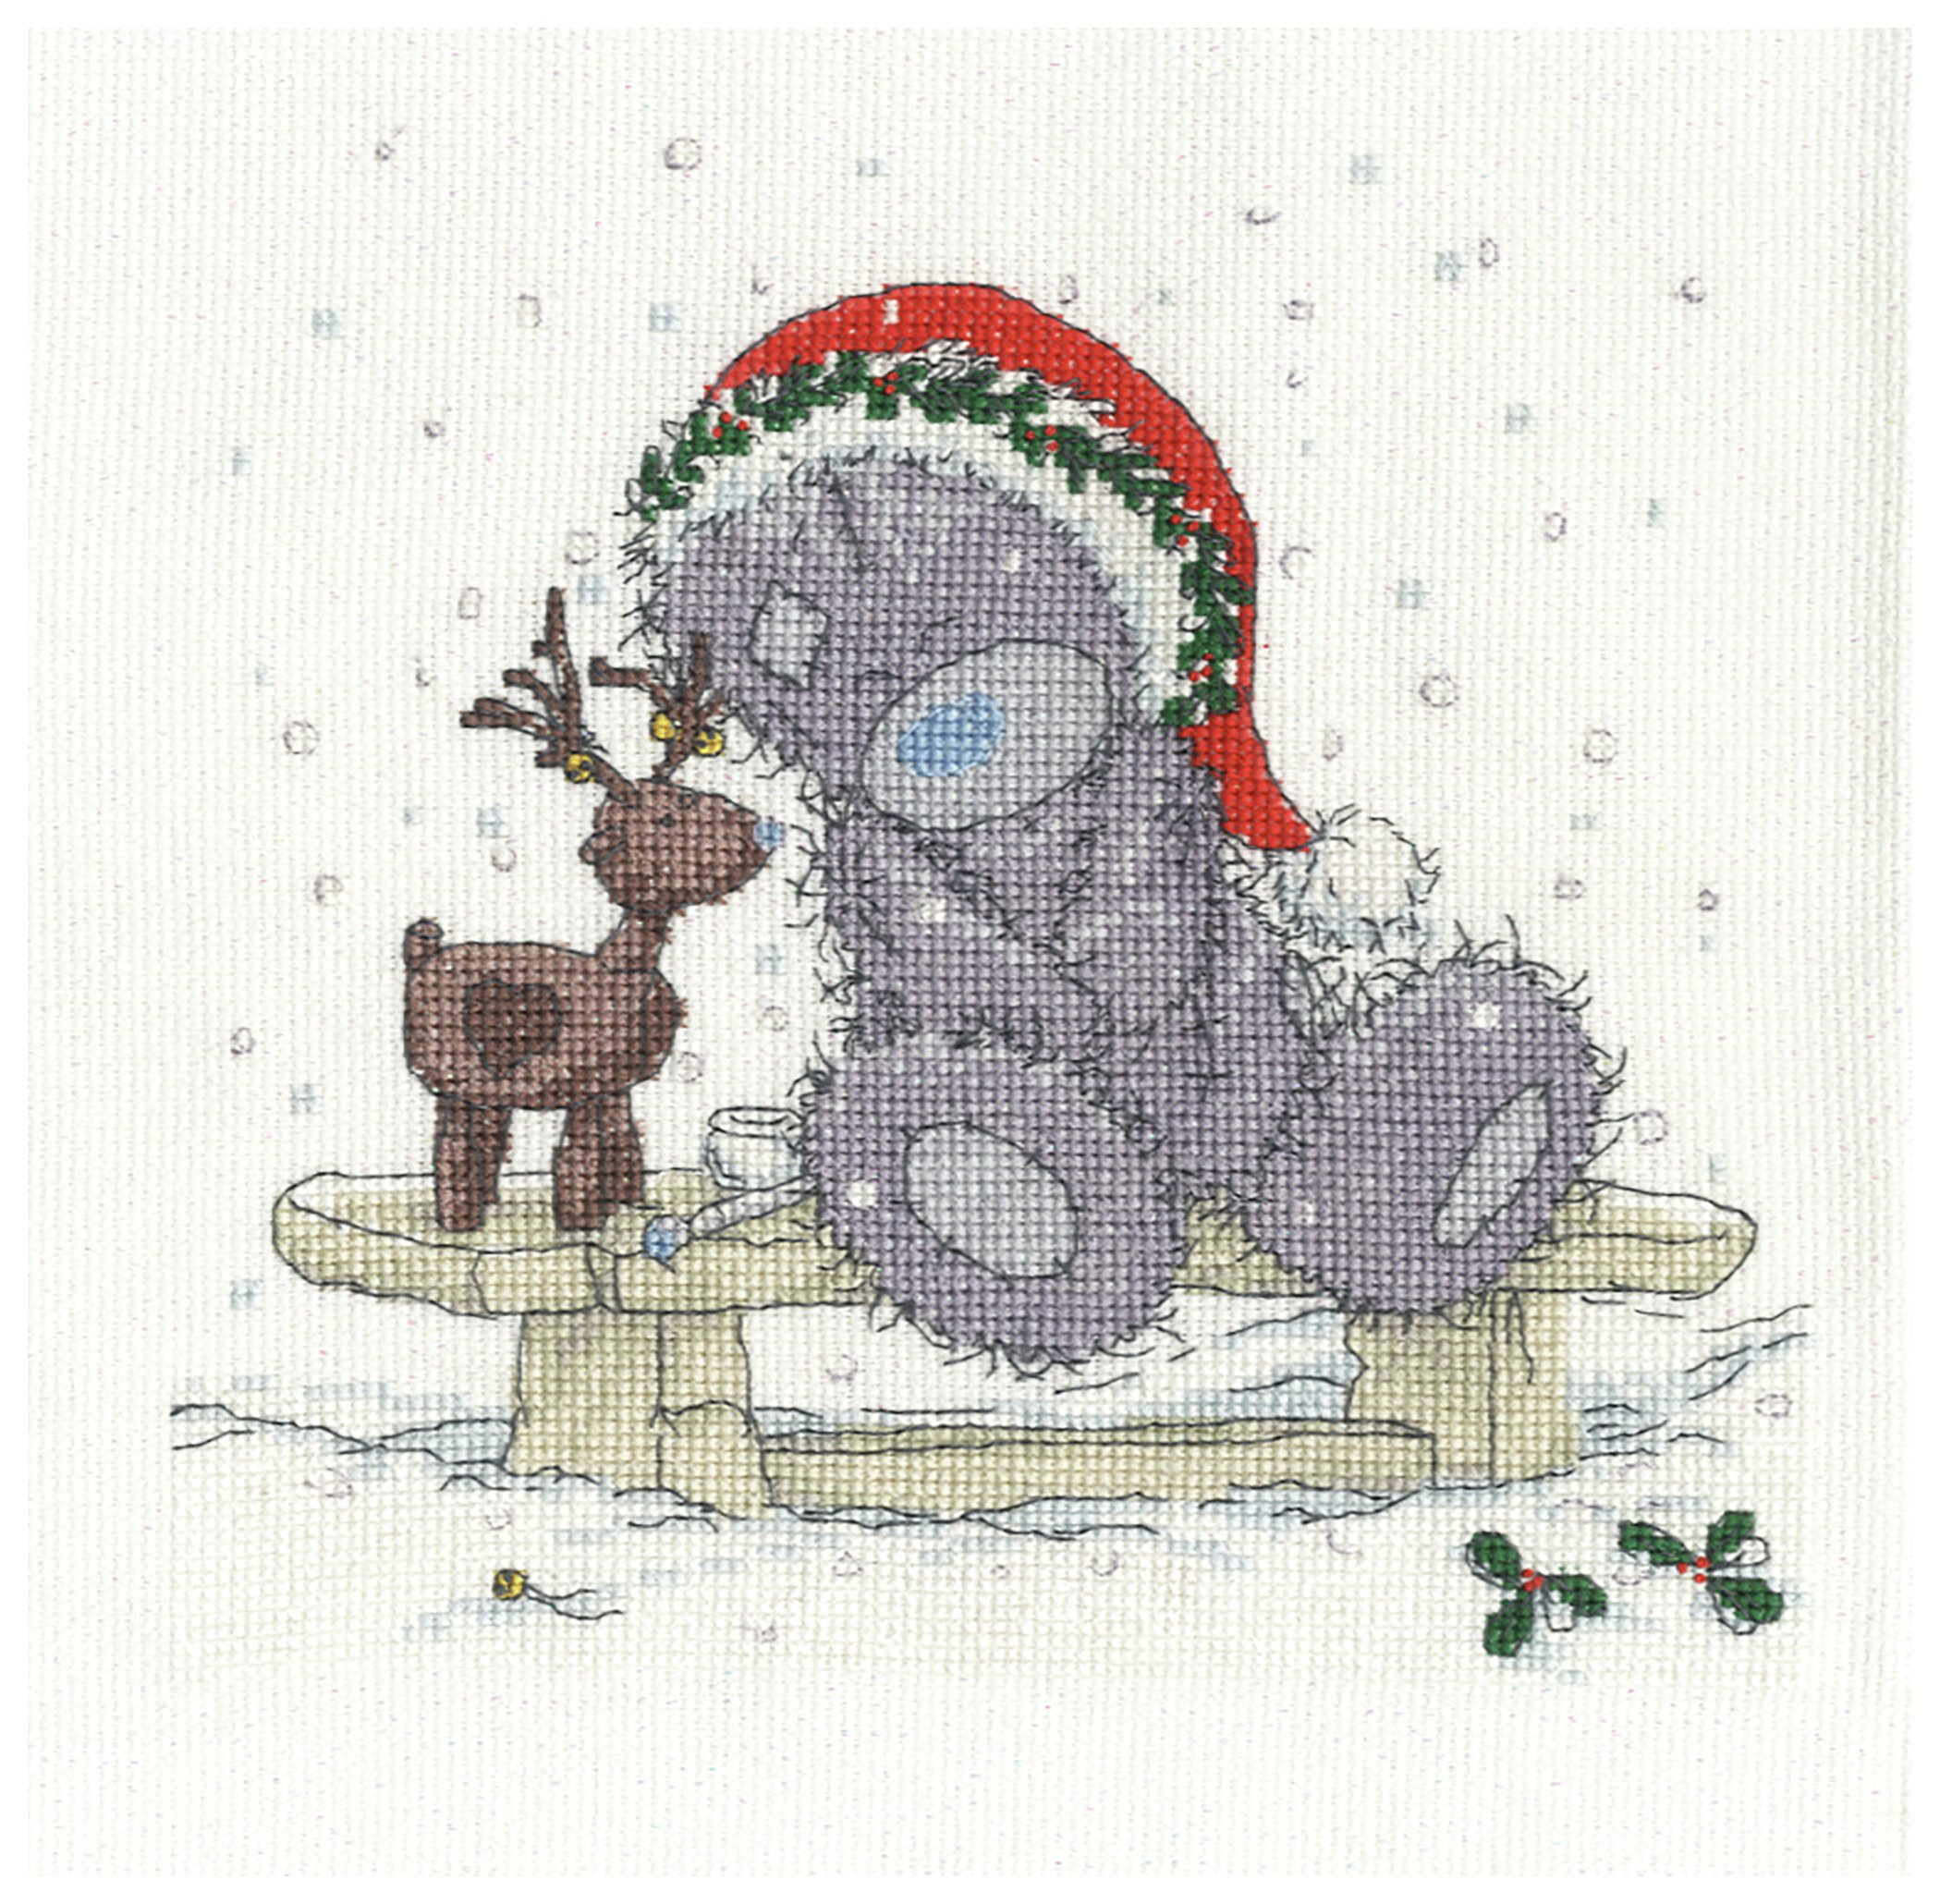 Me to You - Friends in the Snow - Cross Stitch Kit lowest price